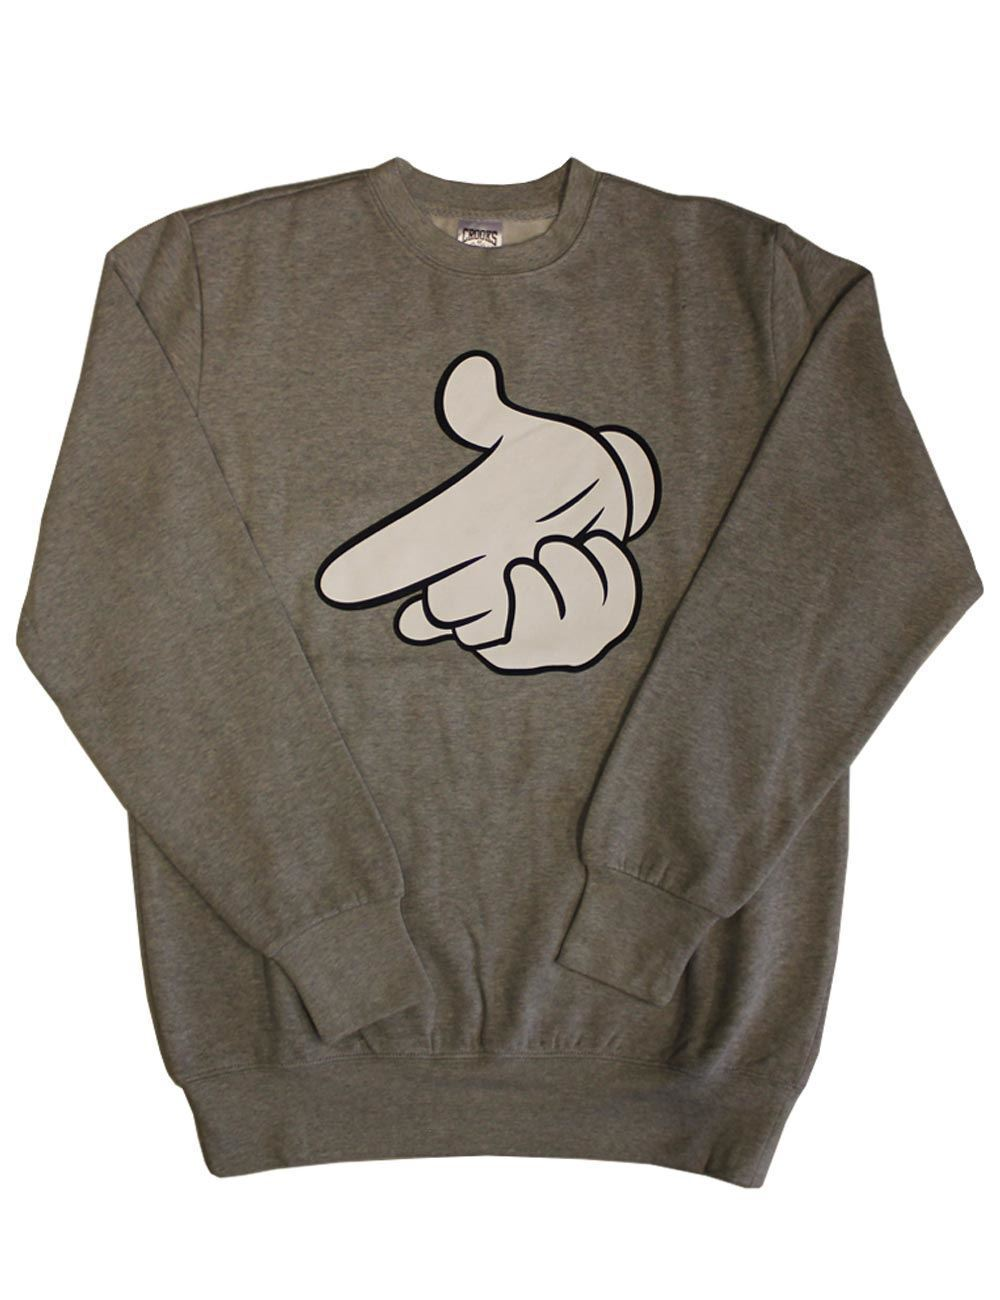 Crooks & Castles Air Gun Sweatshirt Athletic Grau Weiß